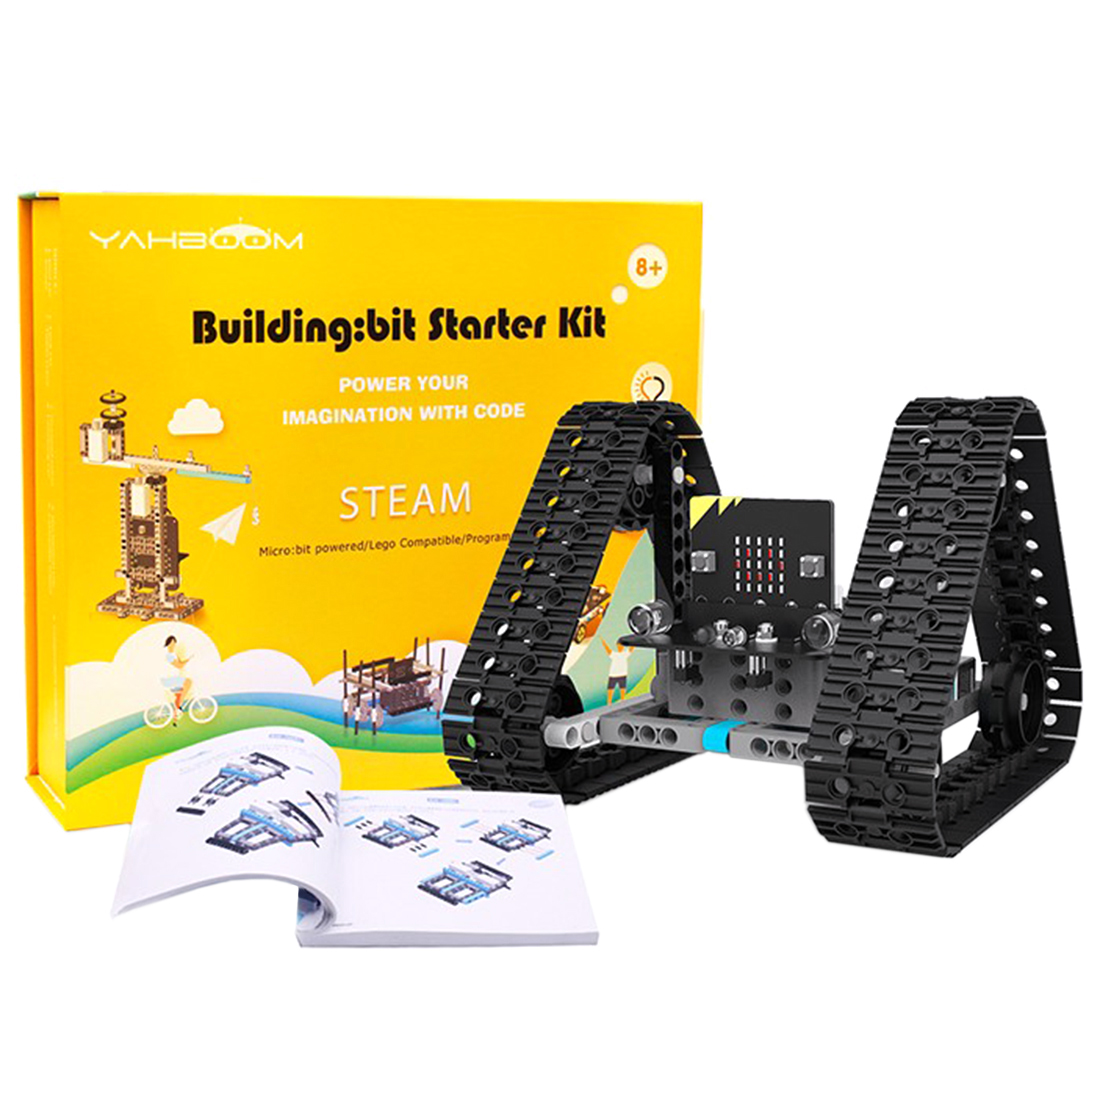 Robot Kit For Micro:bit STEM Robotics Kits For Kids Programmable  Microbit Robots DIY Toy Car With Tutorial Tracking Scientific